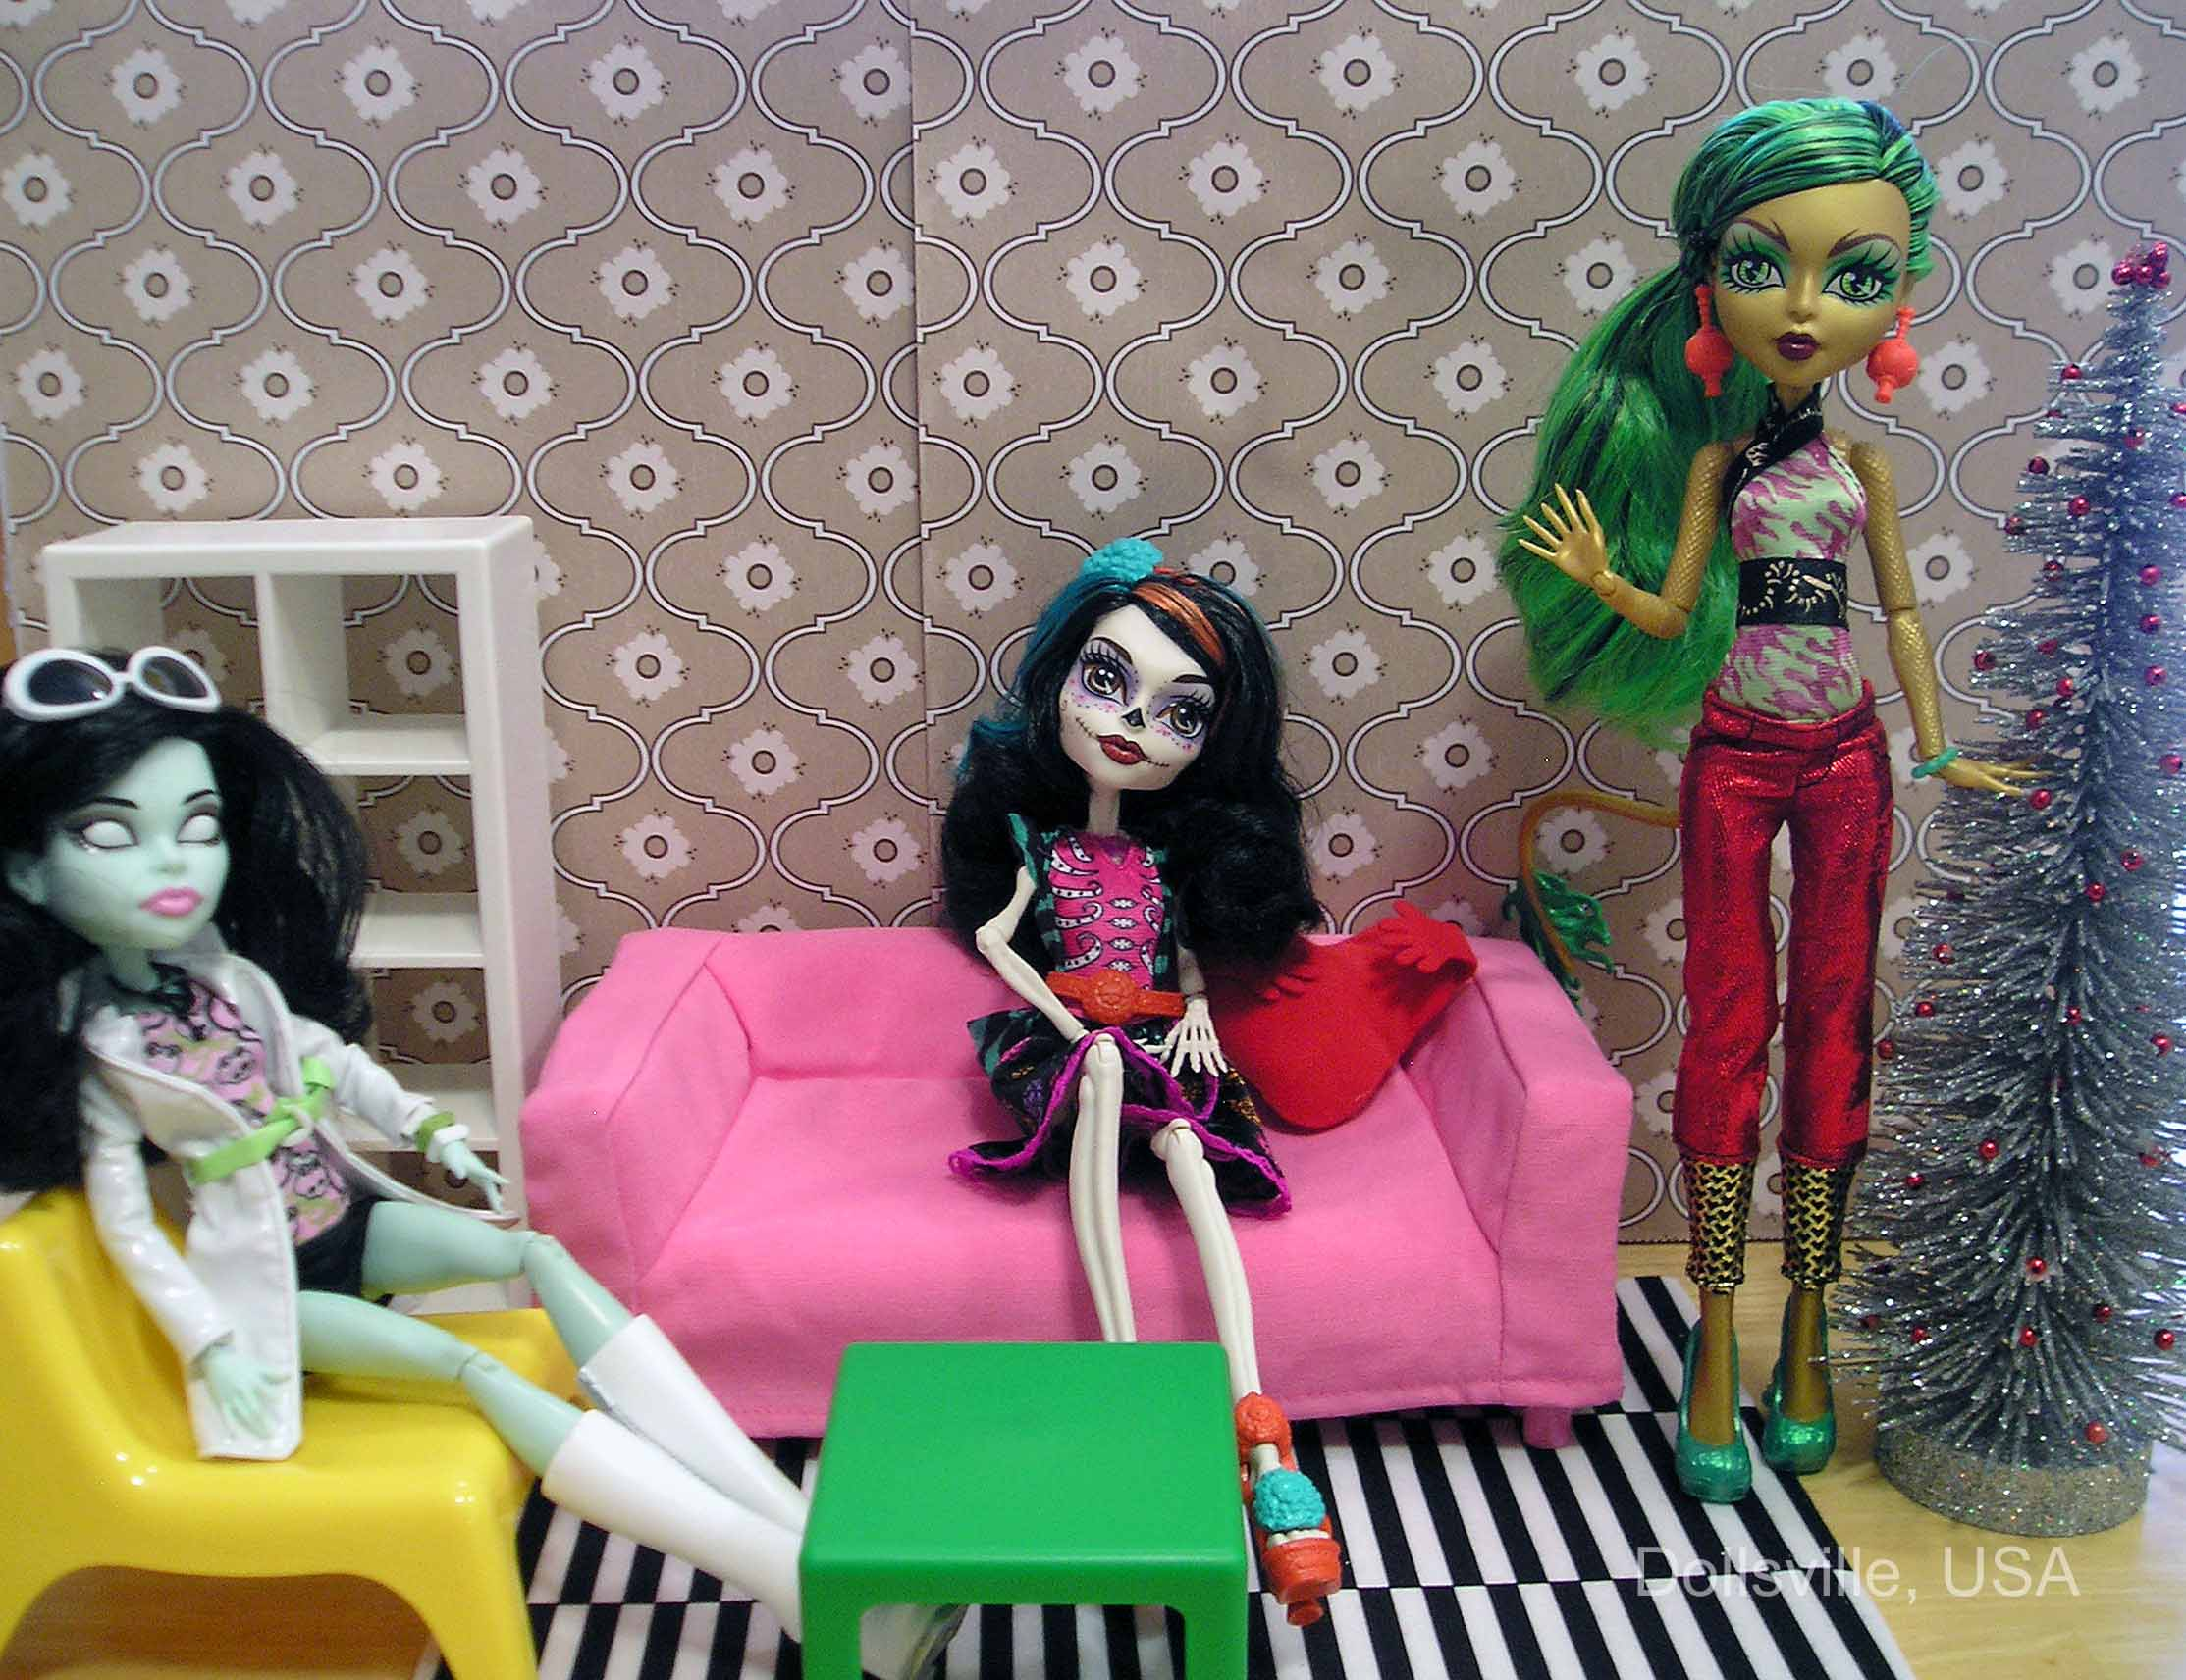 . Review  Ikea Huset doll furniture   Dollsville  USA